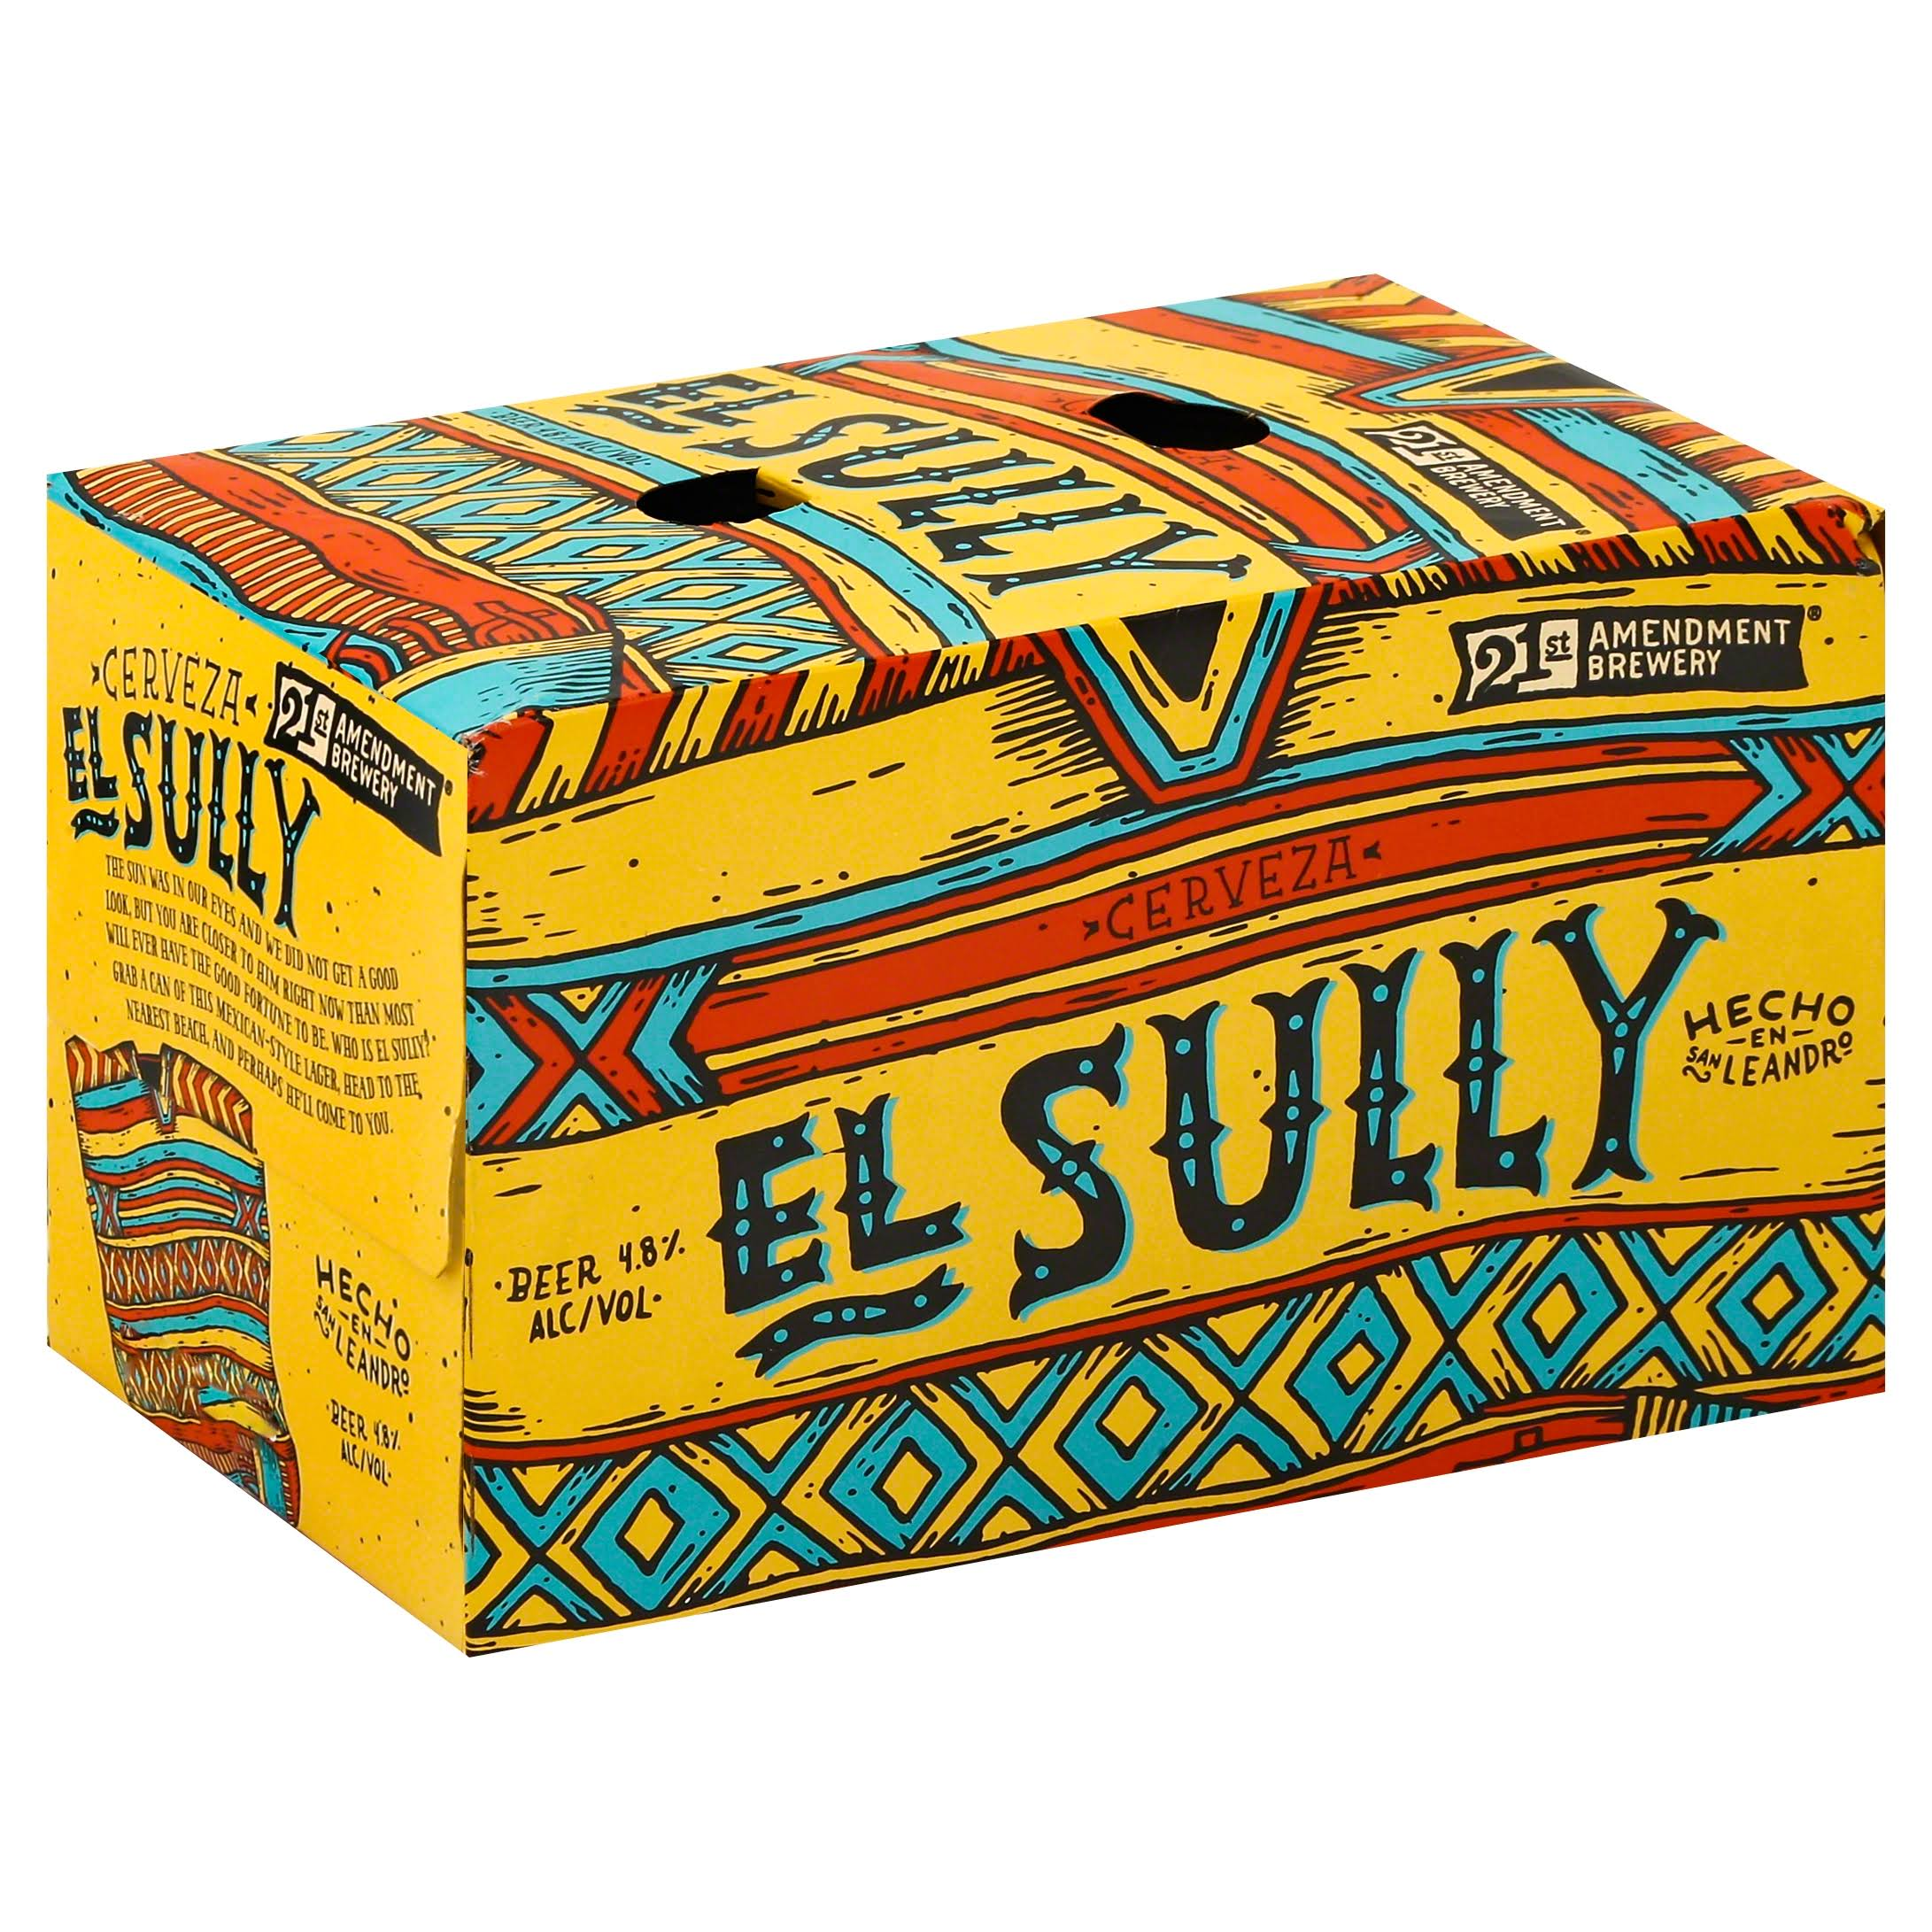 21st Amendment Brewery Beer, El Sully - 6 pack, 12 oz cans